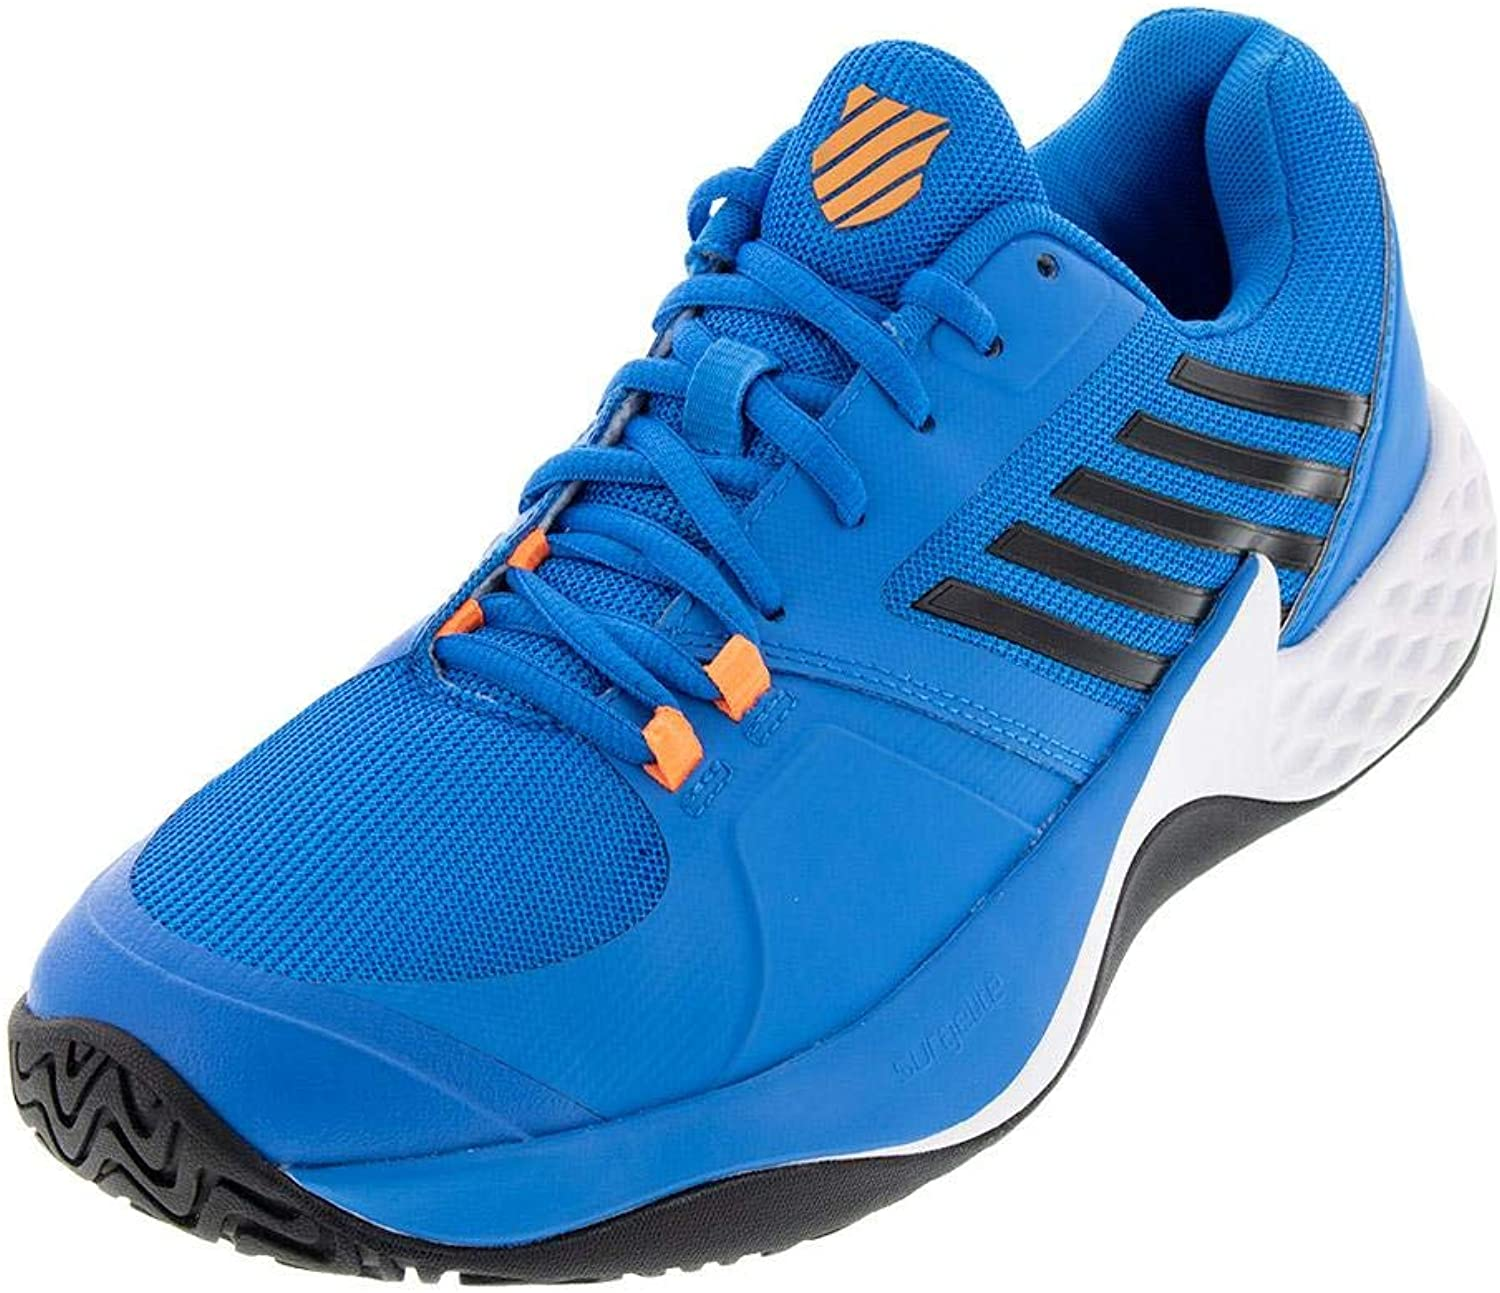 K-Swiss Aero Court Brilliant bluee Neon orange 8.5 UK, Men, bluee Black White, 42.5 EU